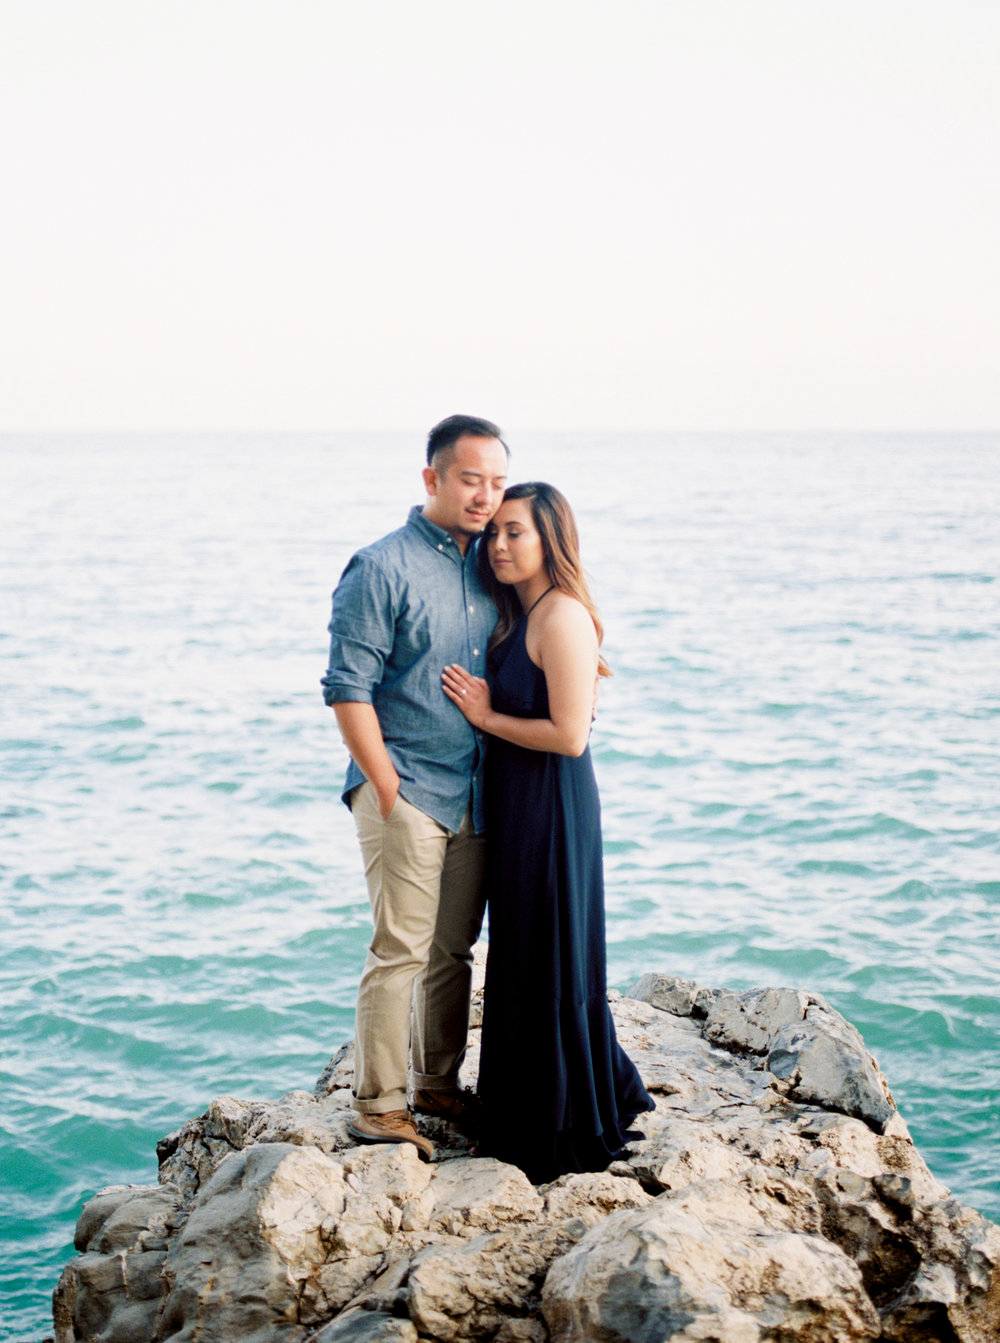 Krystel & Richard  | Rancho Palos Verdes Engagement